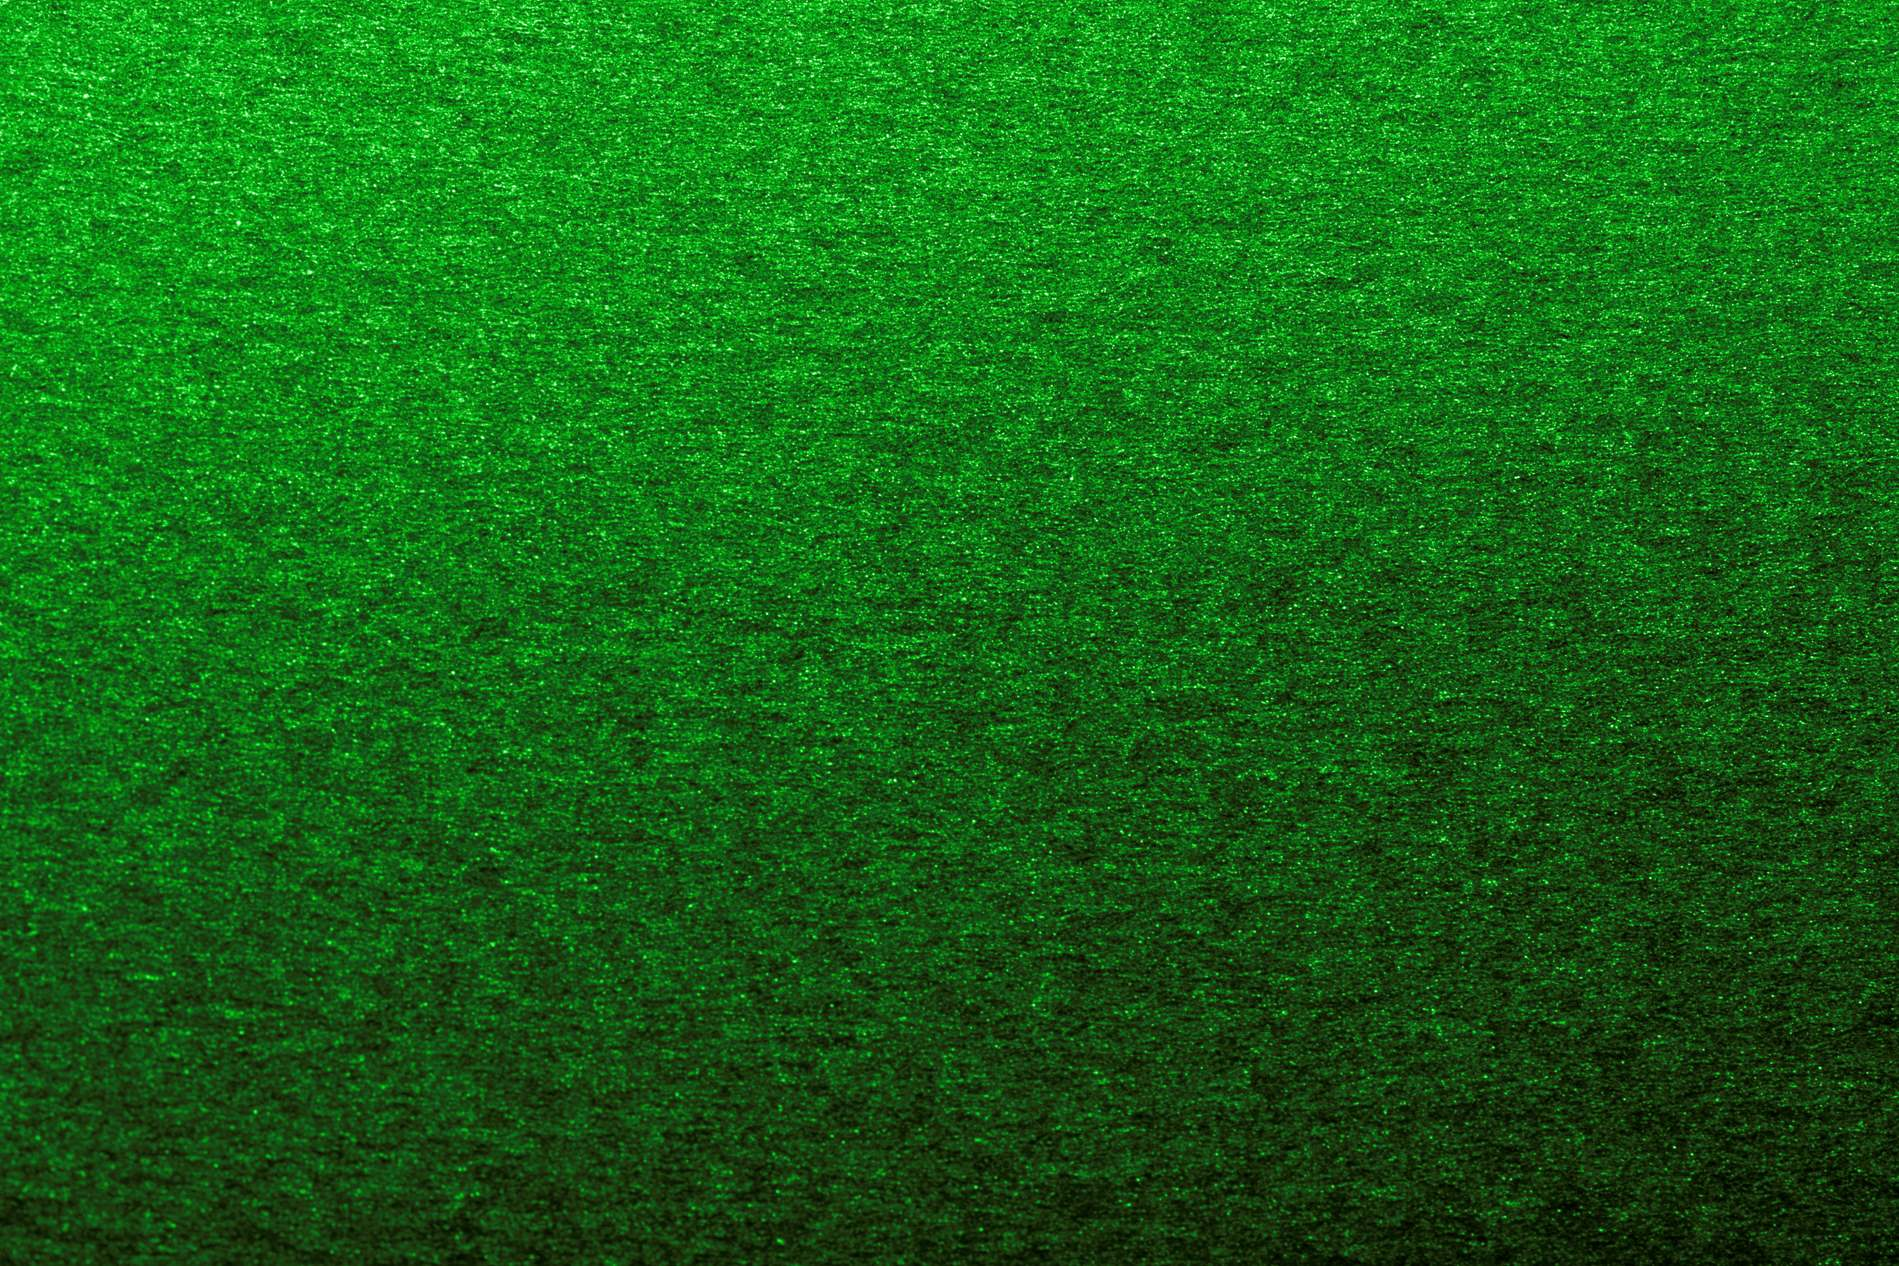 Green Carpet Texture Background Photohdx